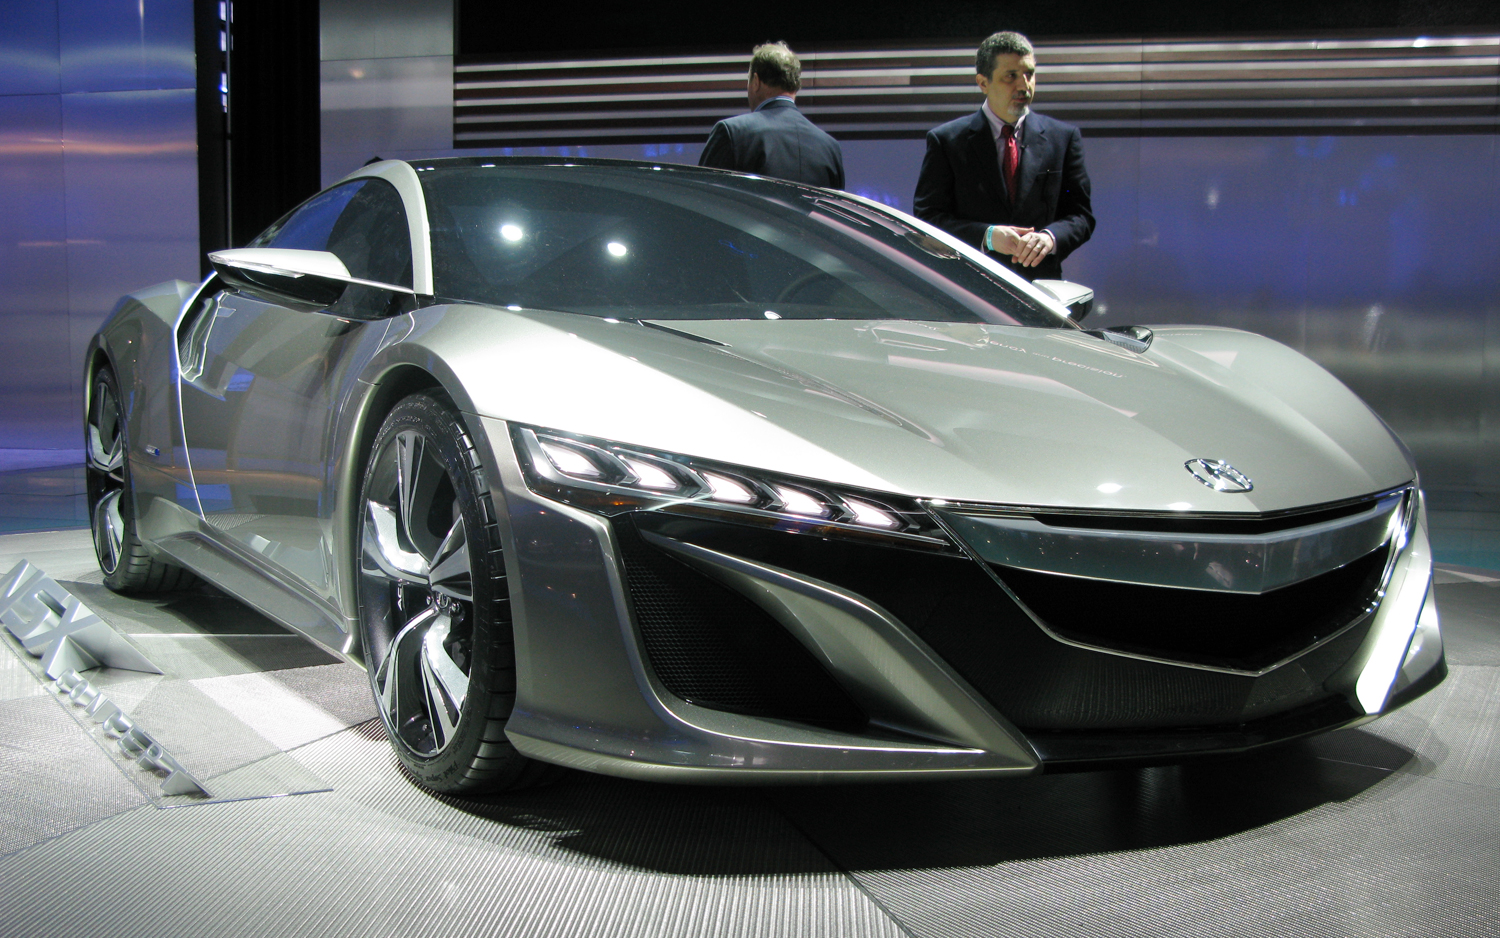 2019 Acura NSX Concept photo - 3